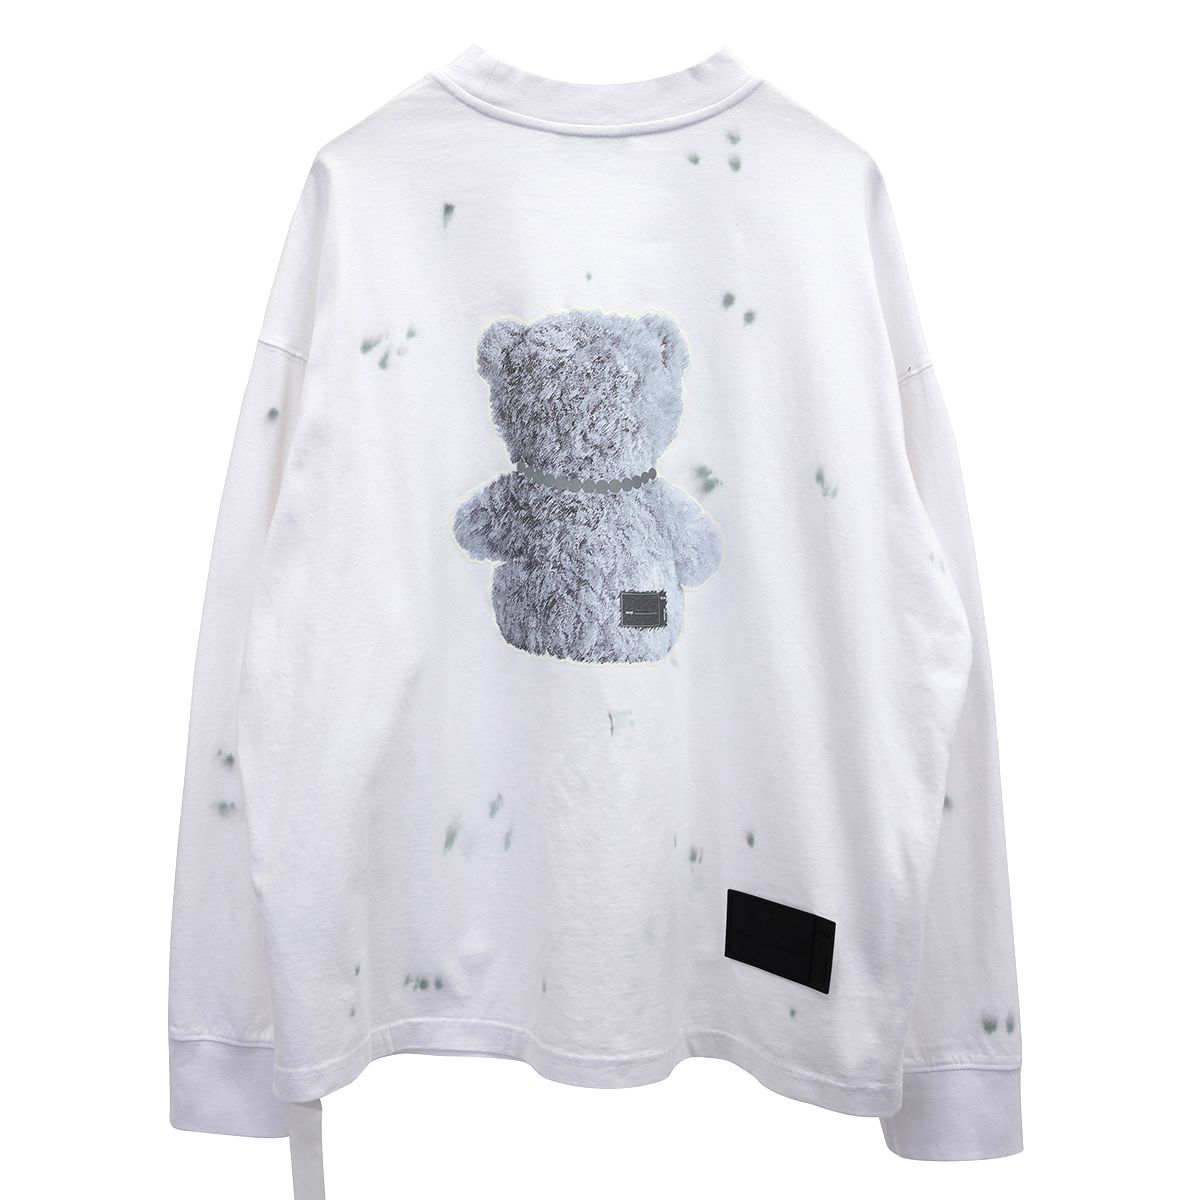 WE11DONE PEARL NECKLACE TEDDY LONG SLEEVE T-SHIRT / WHITE